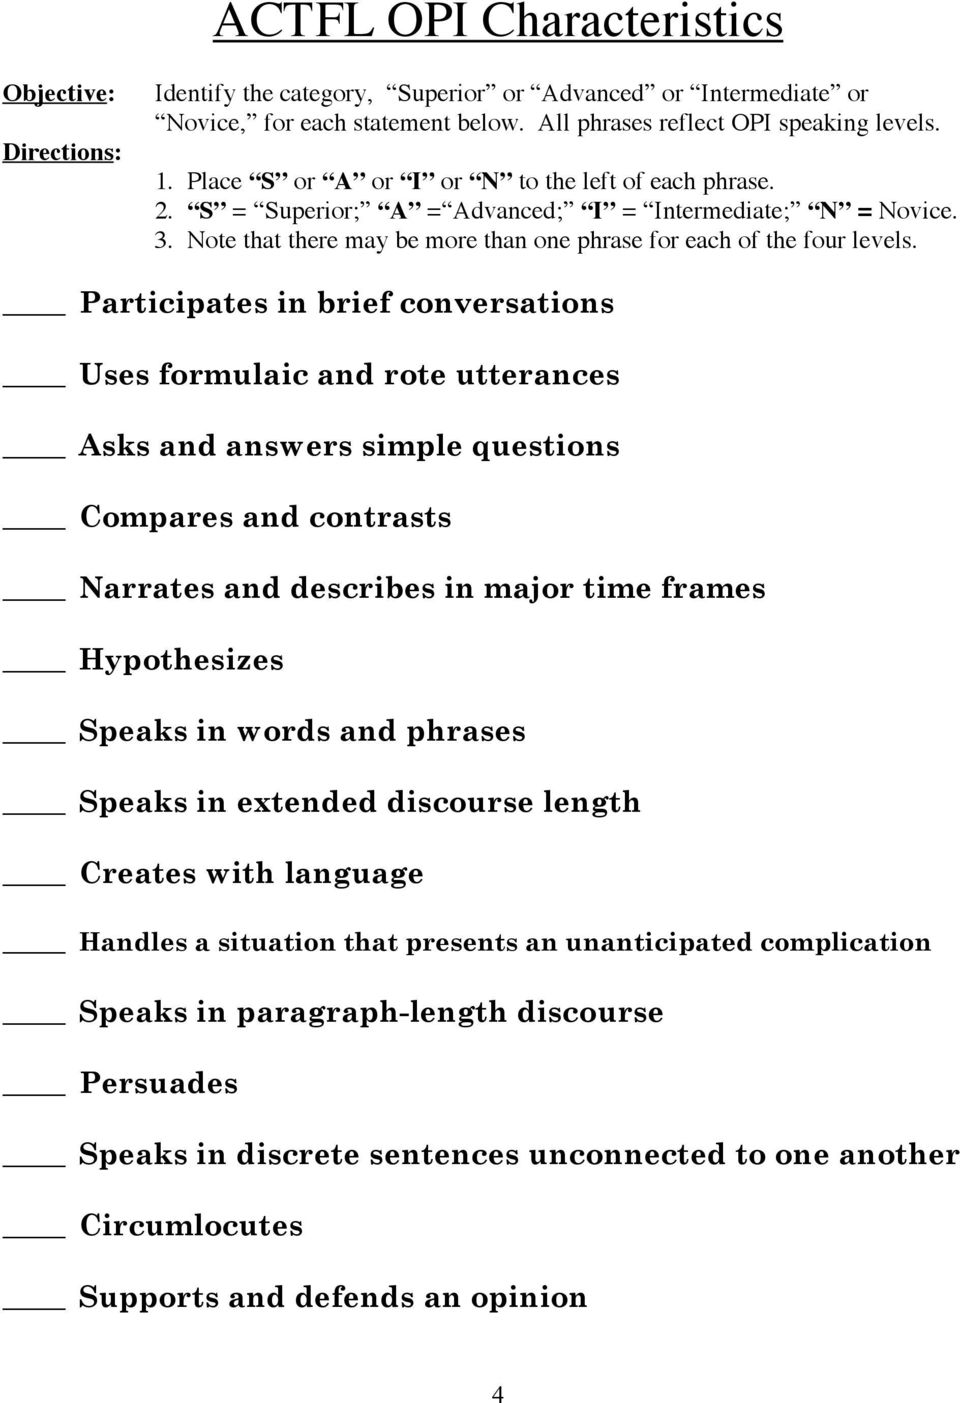 Participates in brief conversations Uses formulaic and rote utterances Asks and answers simple questions Compares and contrasts Narrates and describes in major time frames Hypothesizes Speaks in